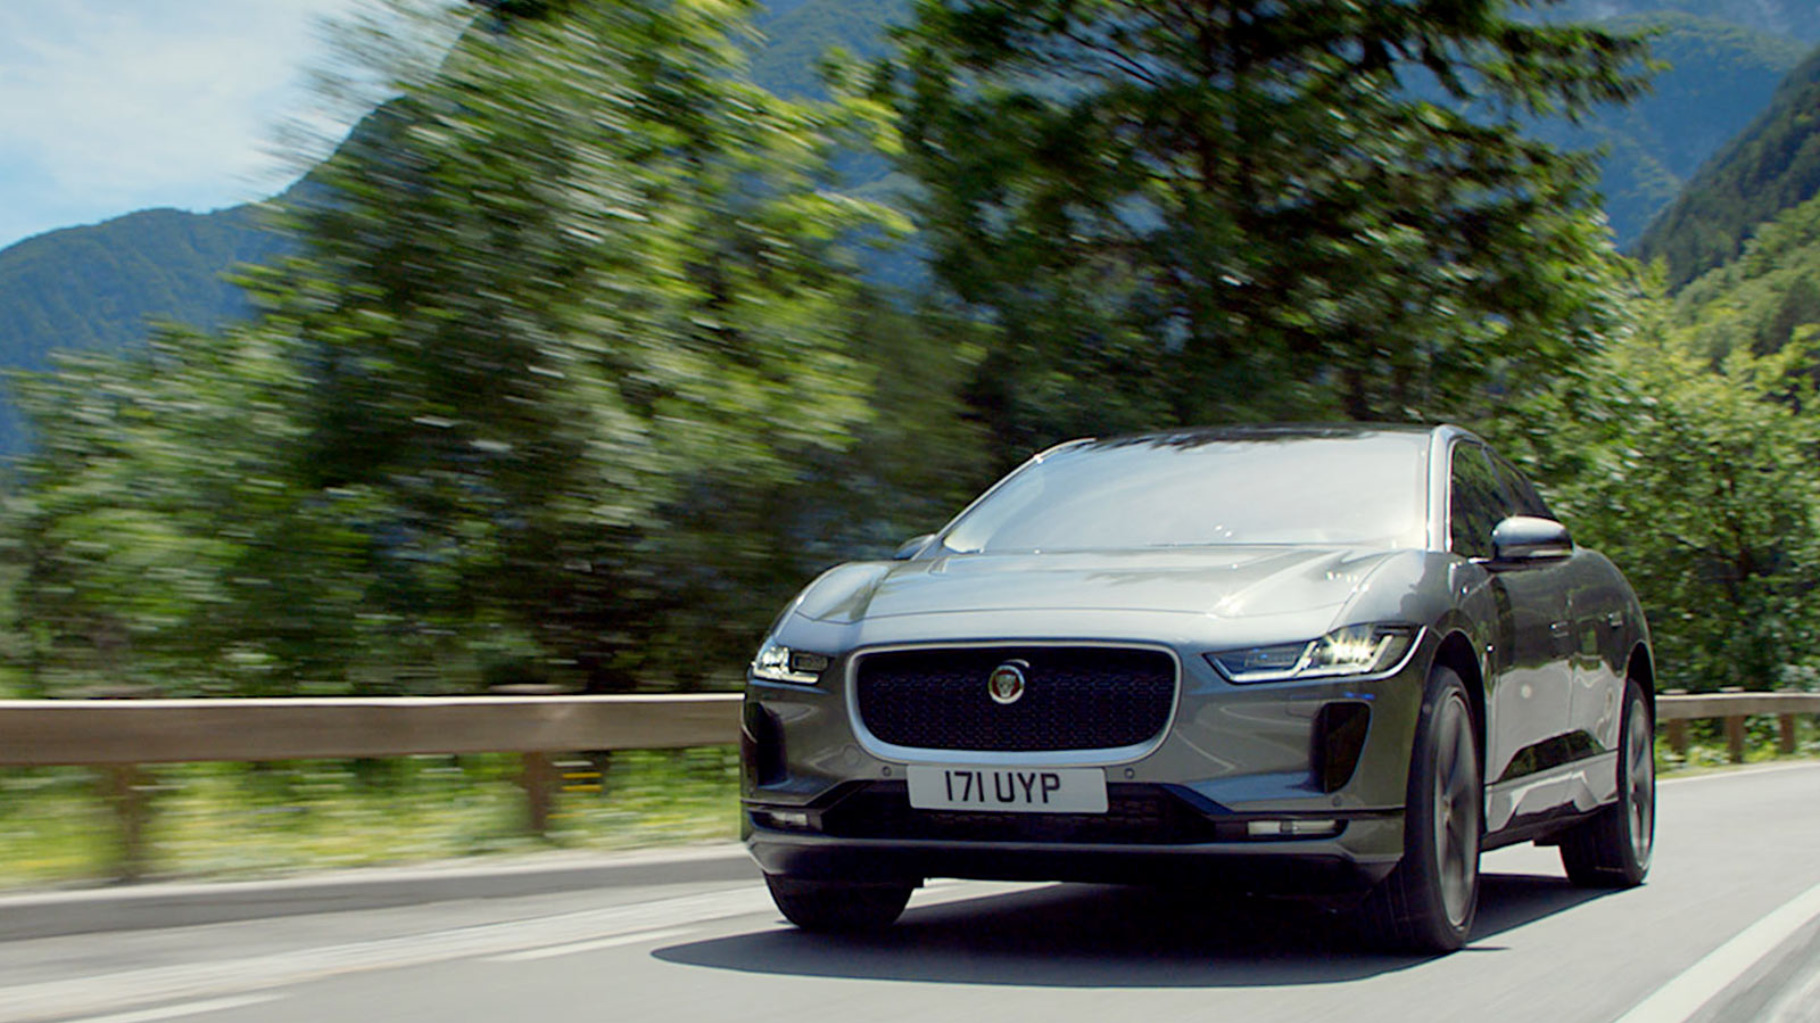 Jaguar I-Pace Driving on a road.